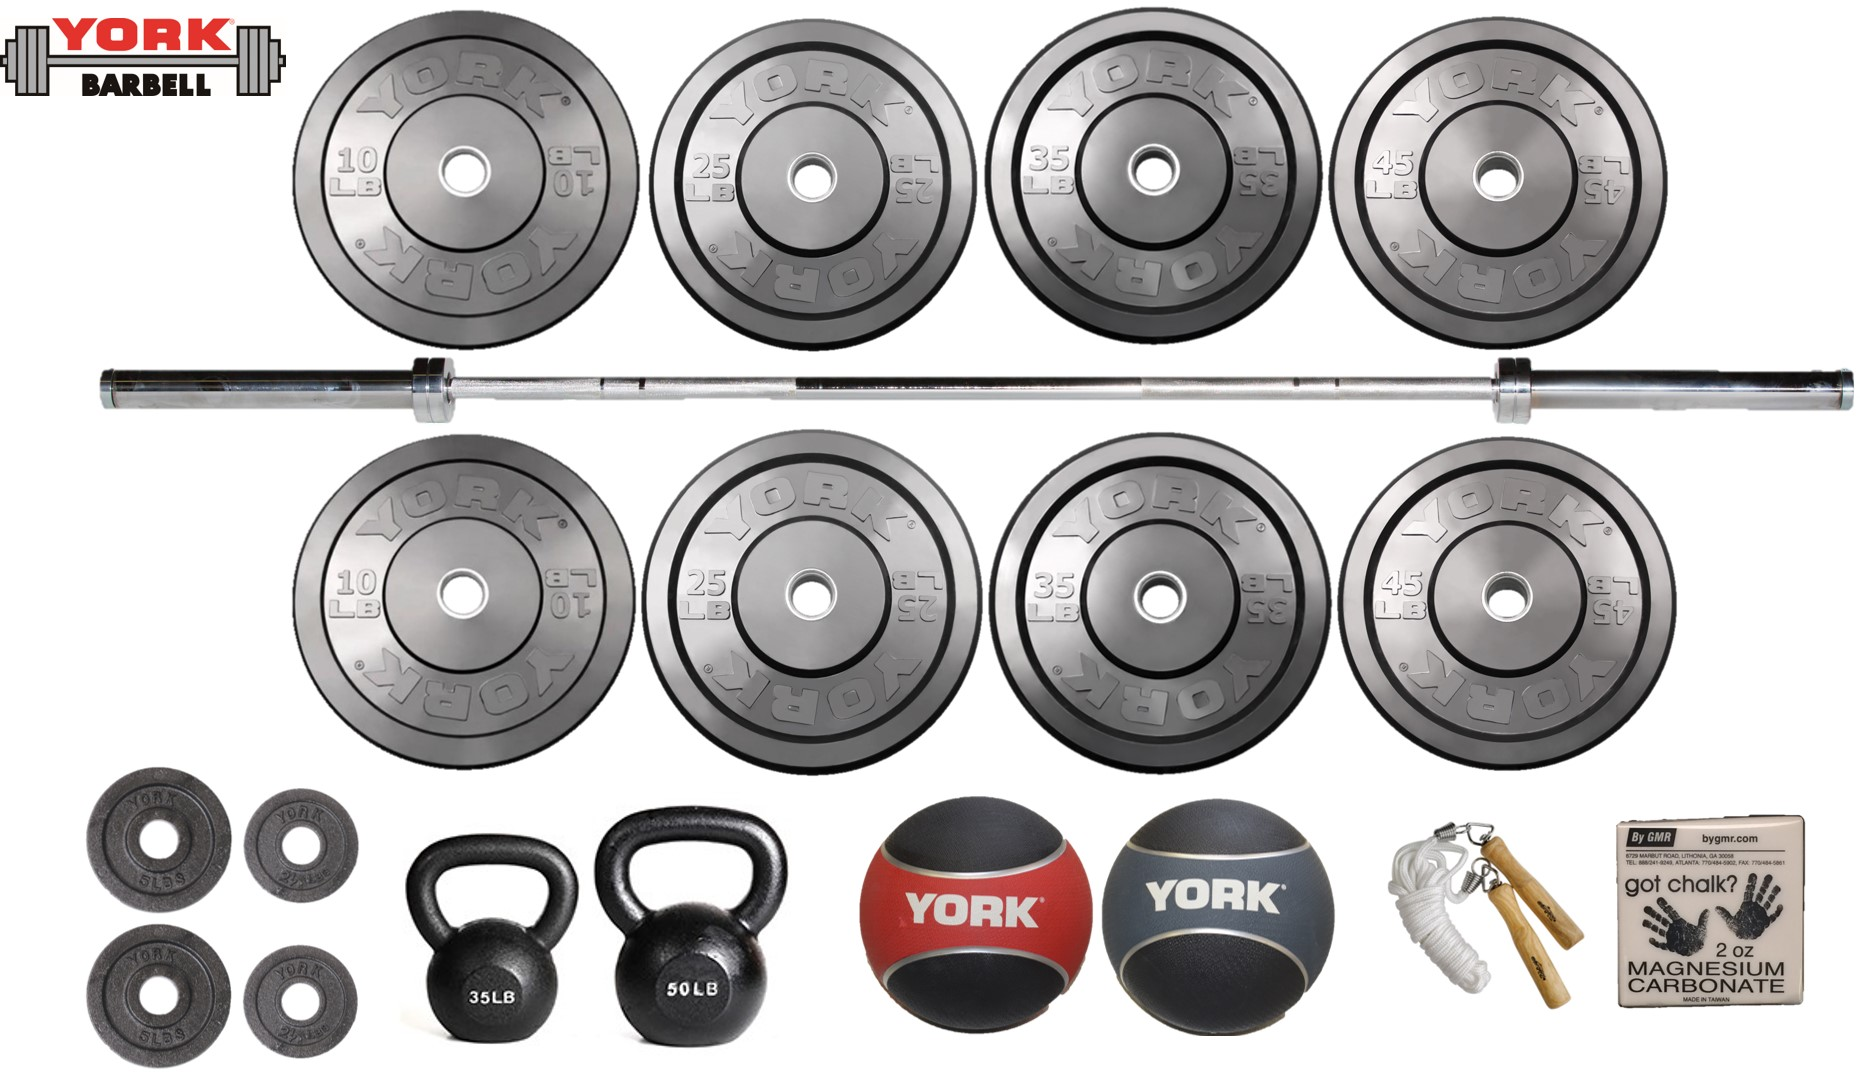 Starter garage gym package home equipment york barbell